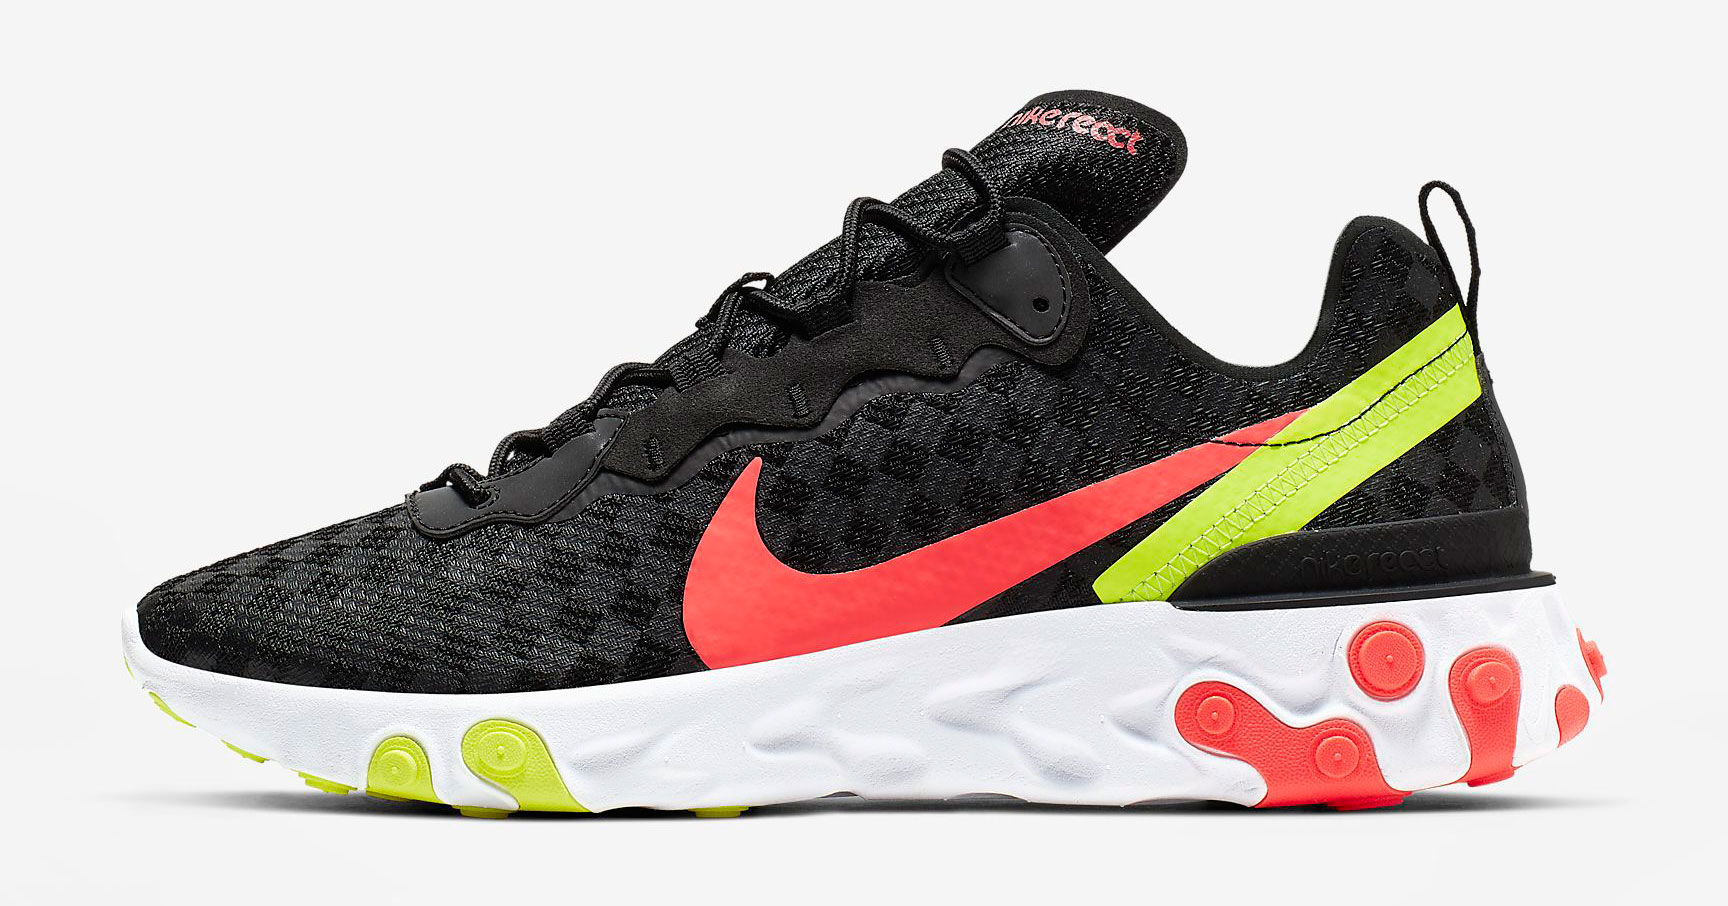 nike-react-element-55-black-retro-future-where-to-buy